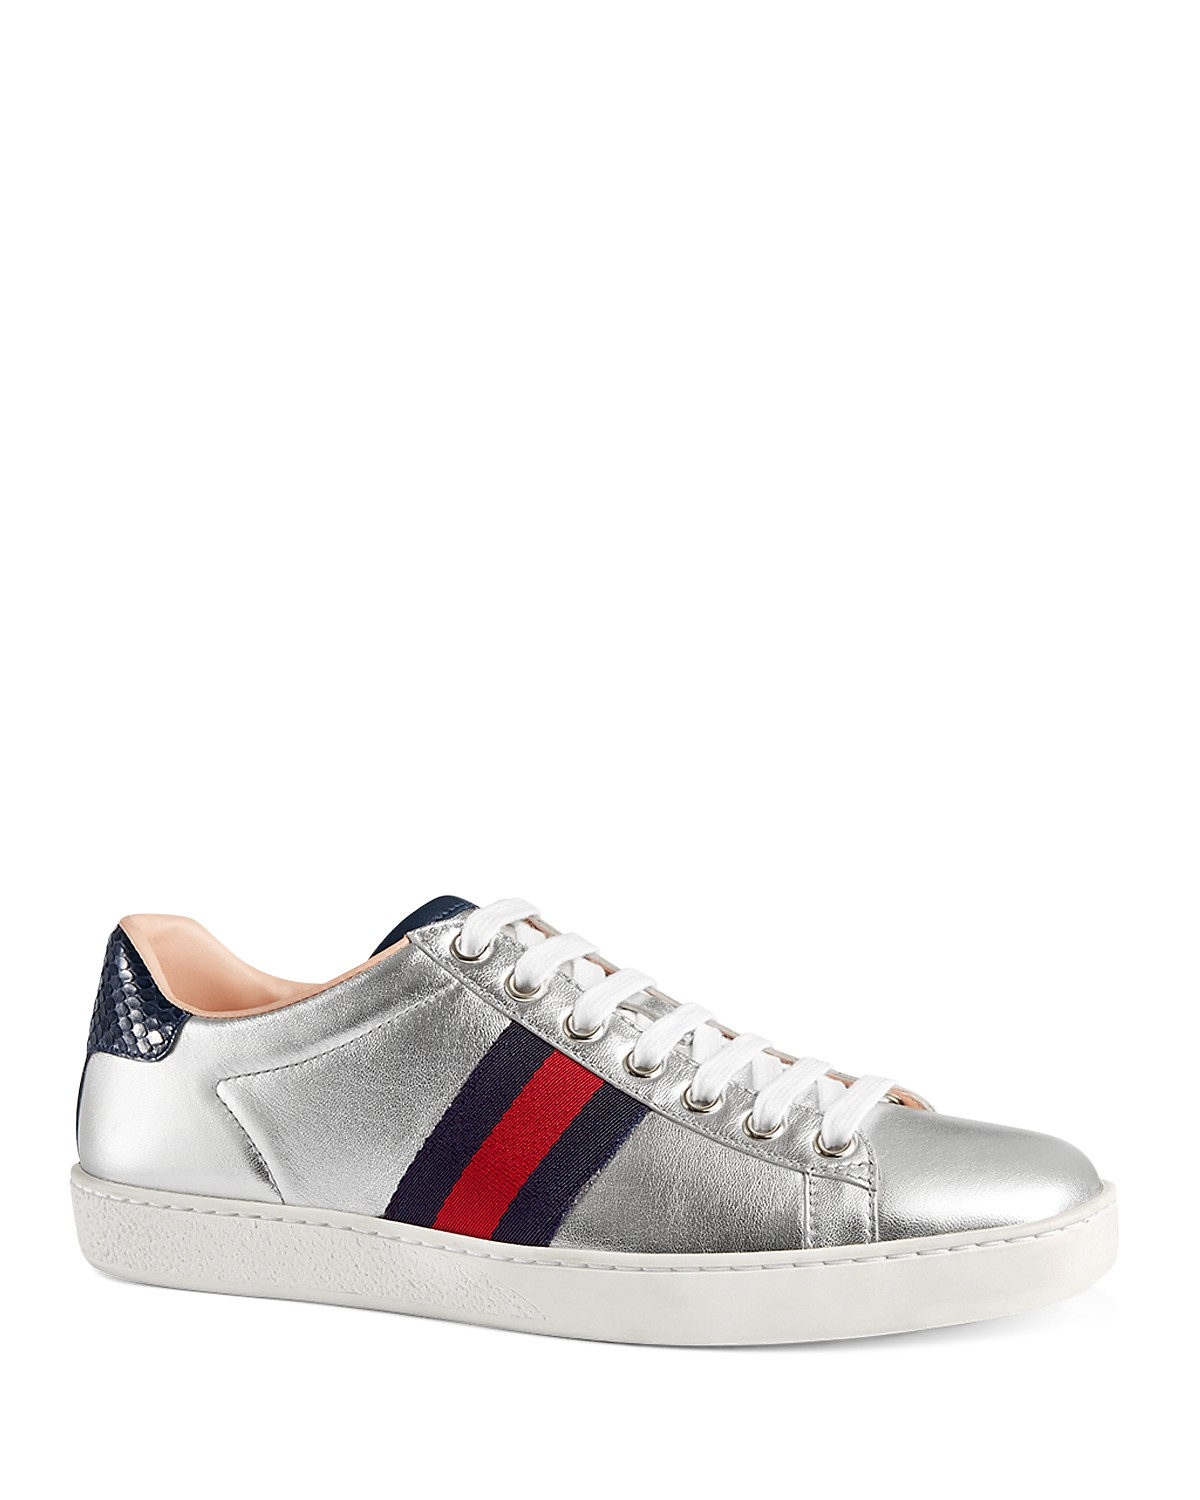 7212426eacd0 Gucci Silver Ace Sneaker Size 7 - Low-Top Sneakers for Sale - Grailed